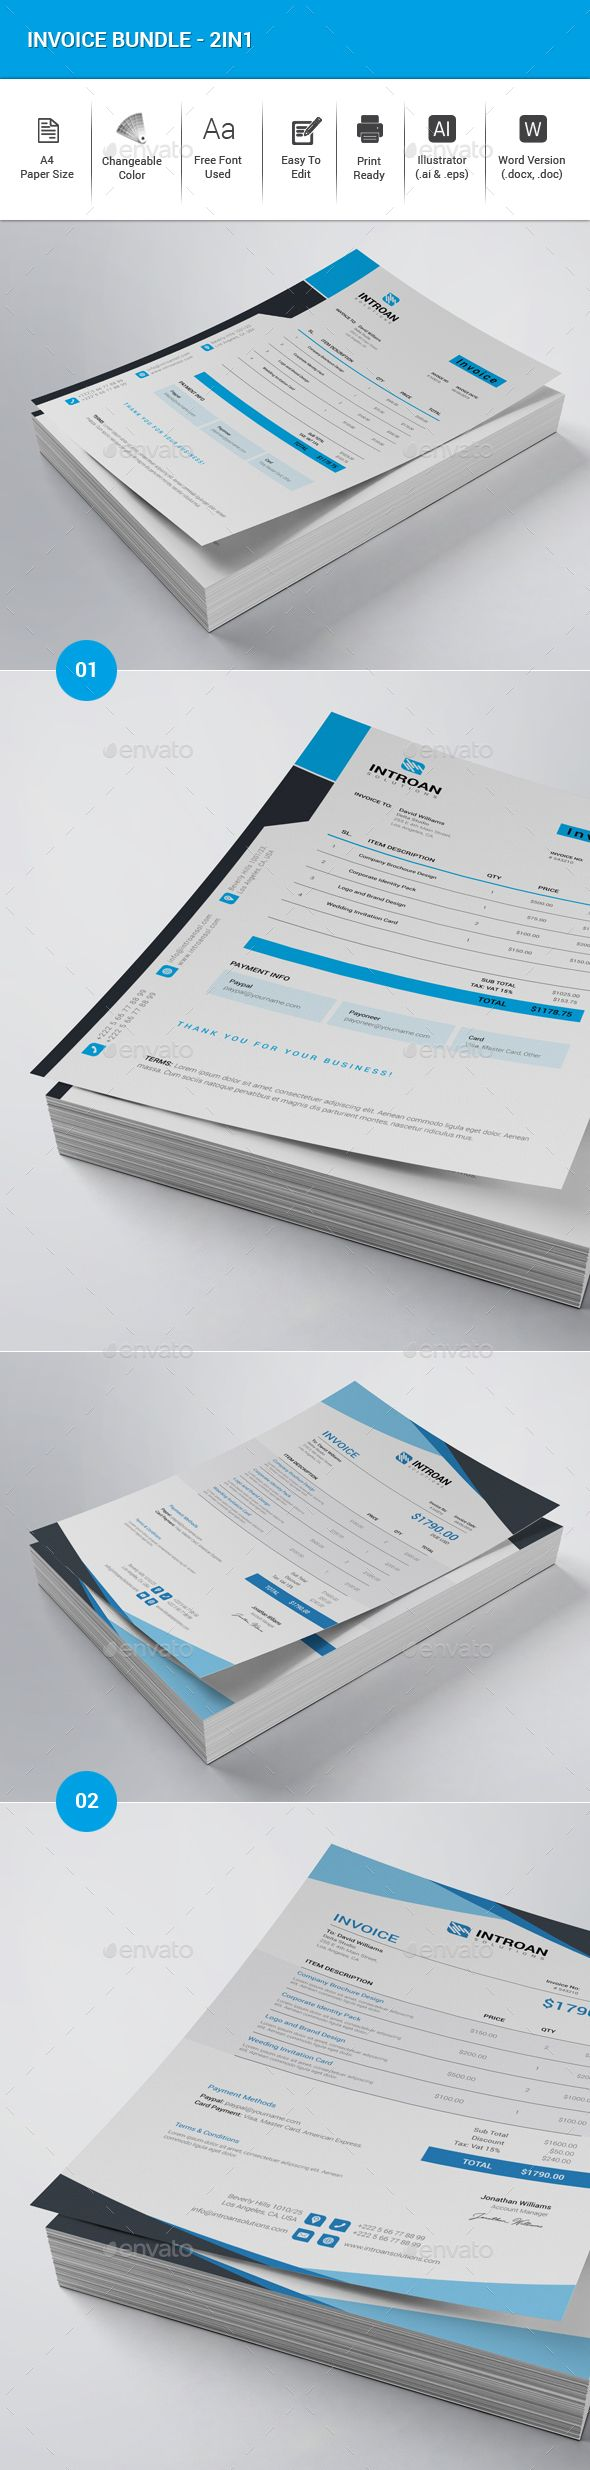 2 Invoice Templates Vector Eps Ai Illustrator Ms Word Very Easy